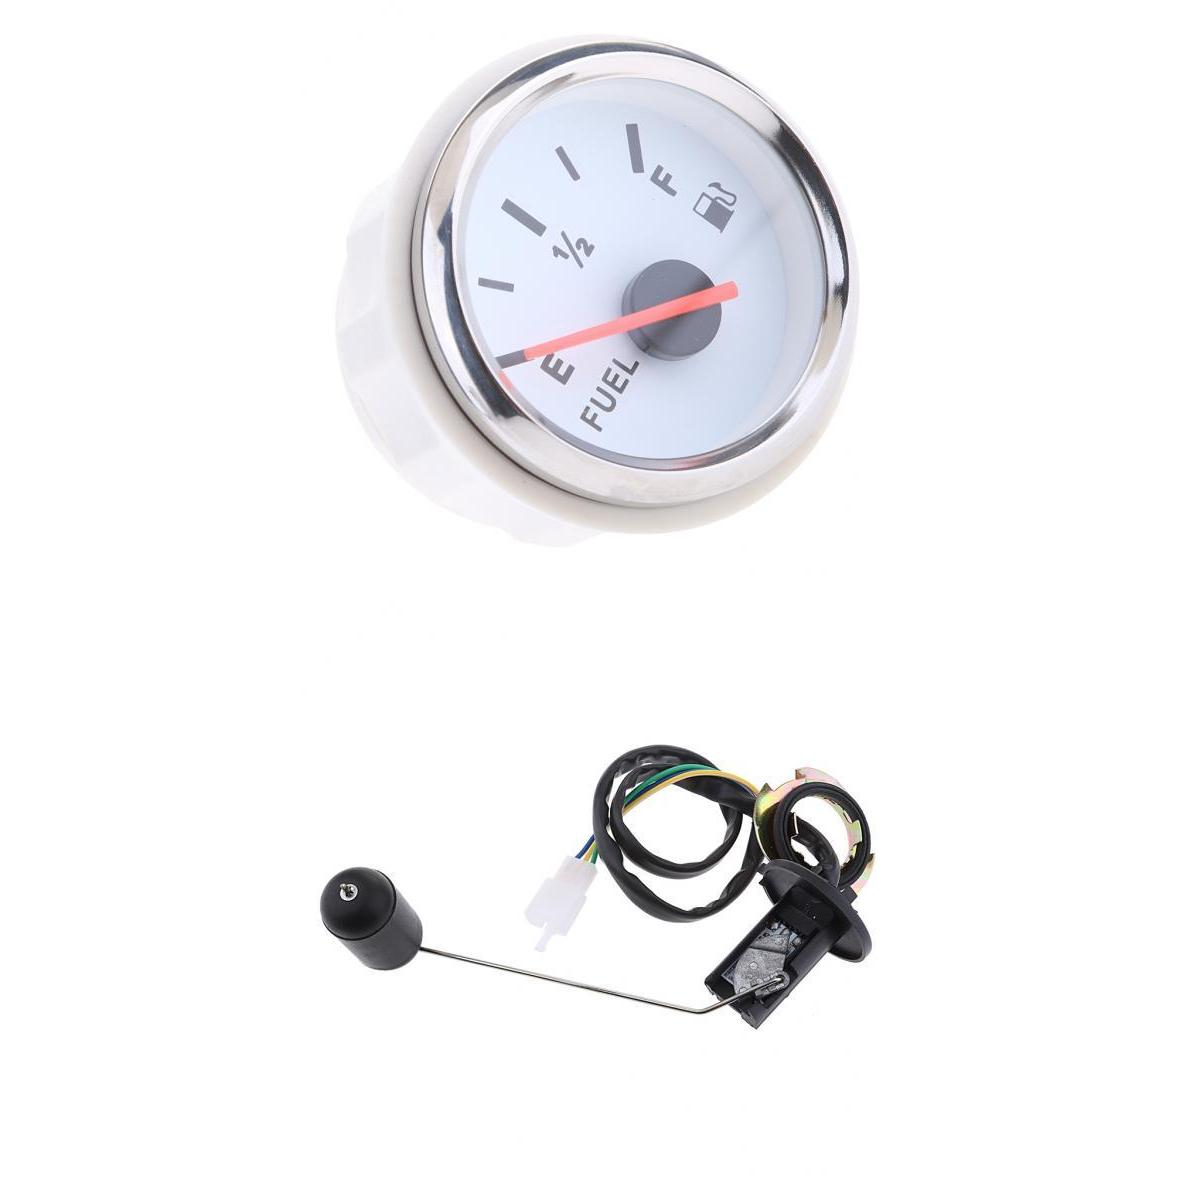 Universal 2' 12V Car Fuel Level Gauge Meter E-1/2-F Pointer + Fuel Sensor jauge de carburant Indicador de nivel de combustible